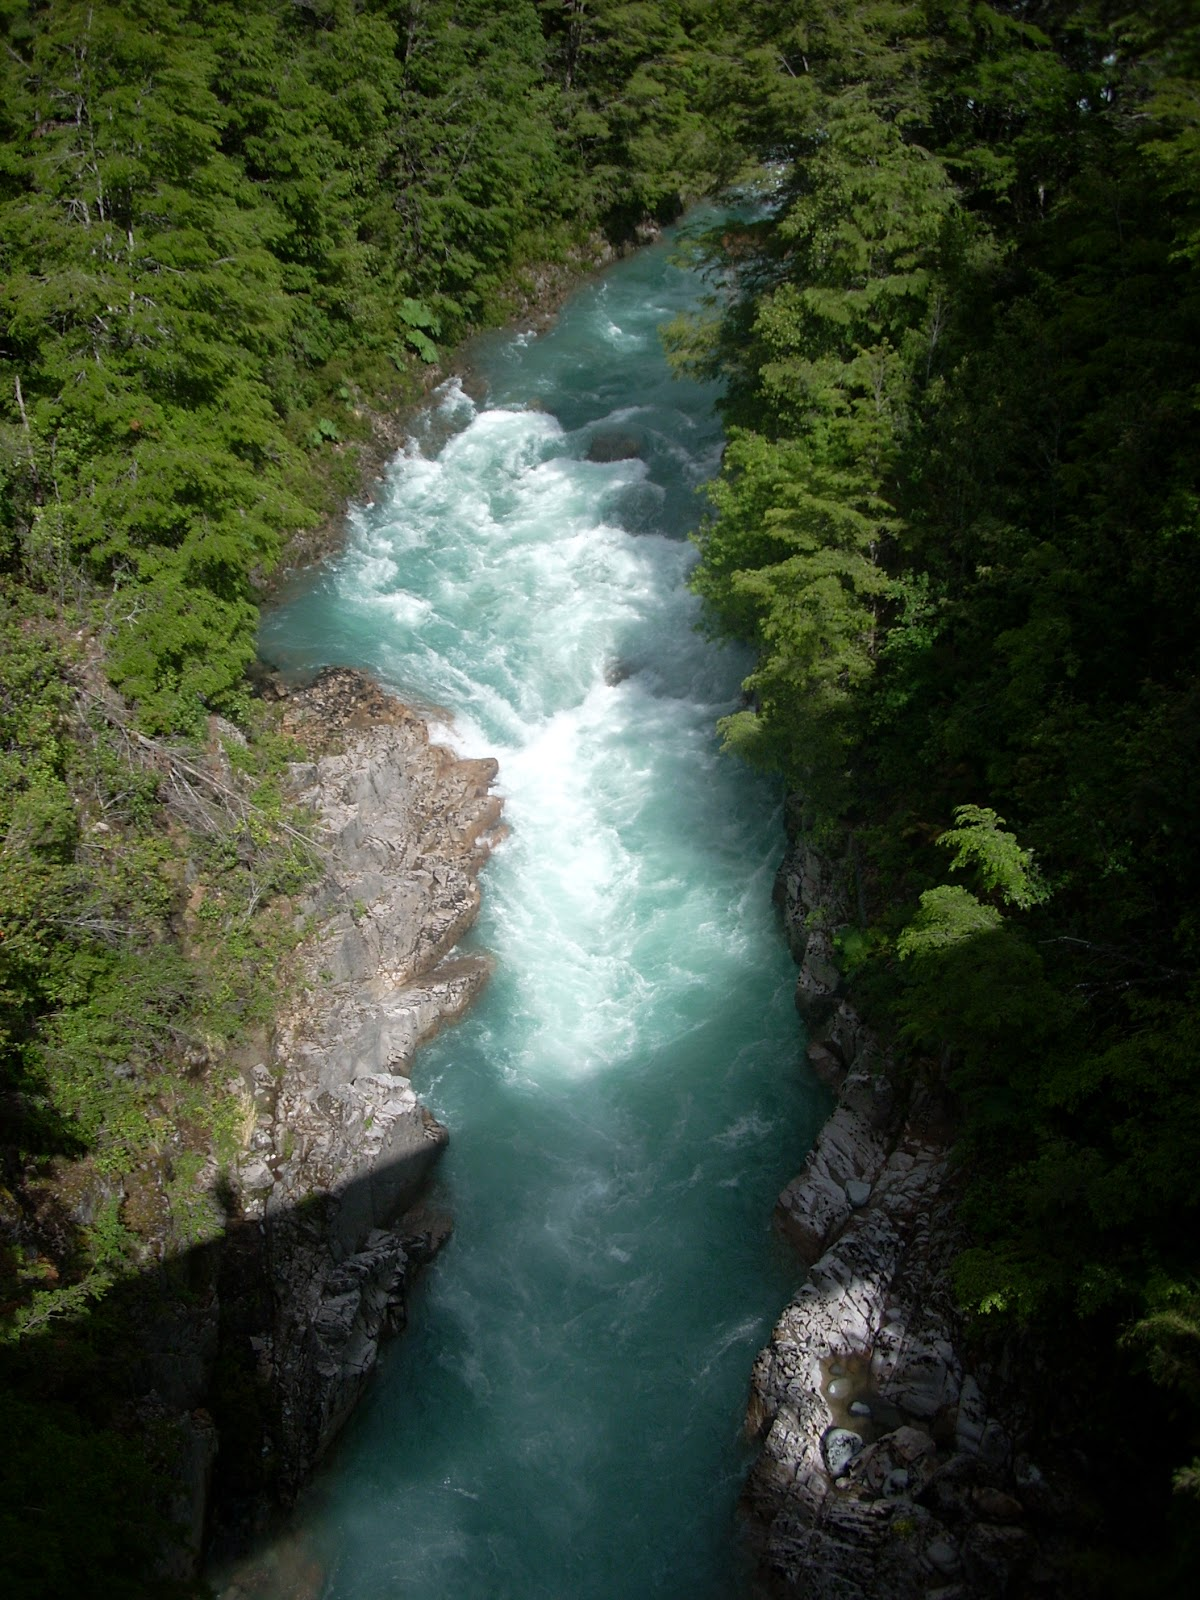 Plenty of kayaking and rafting on these rivers